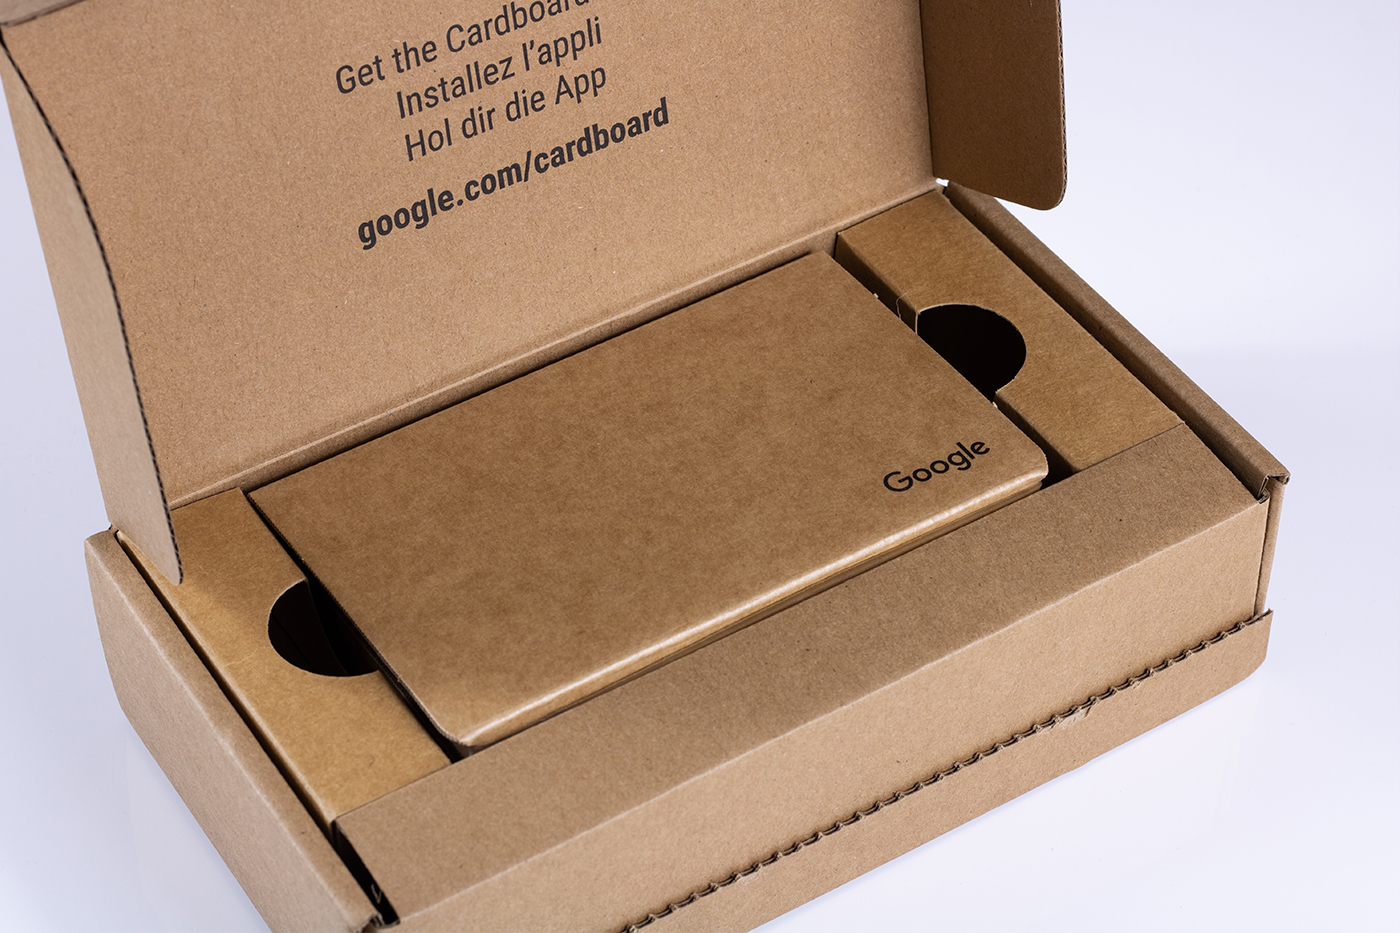 Google Cardboard in Outer Box